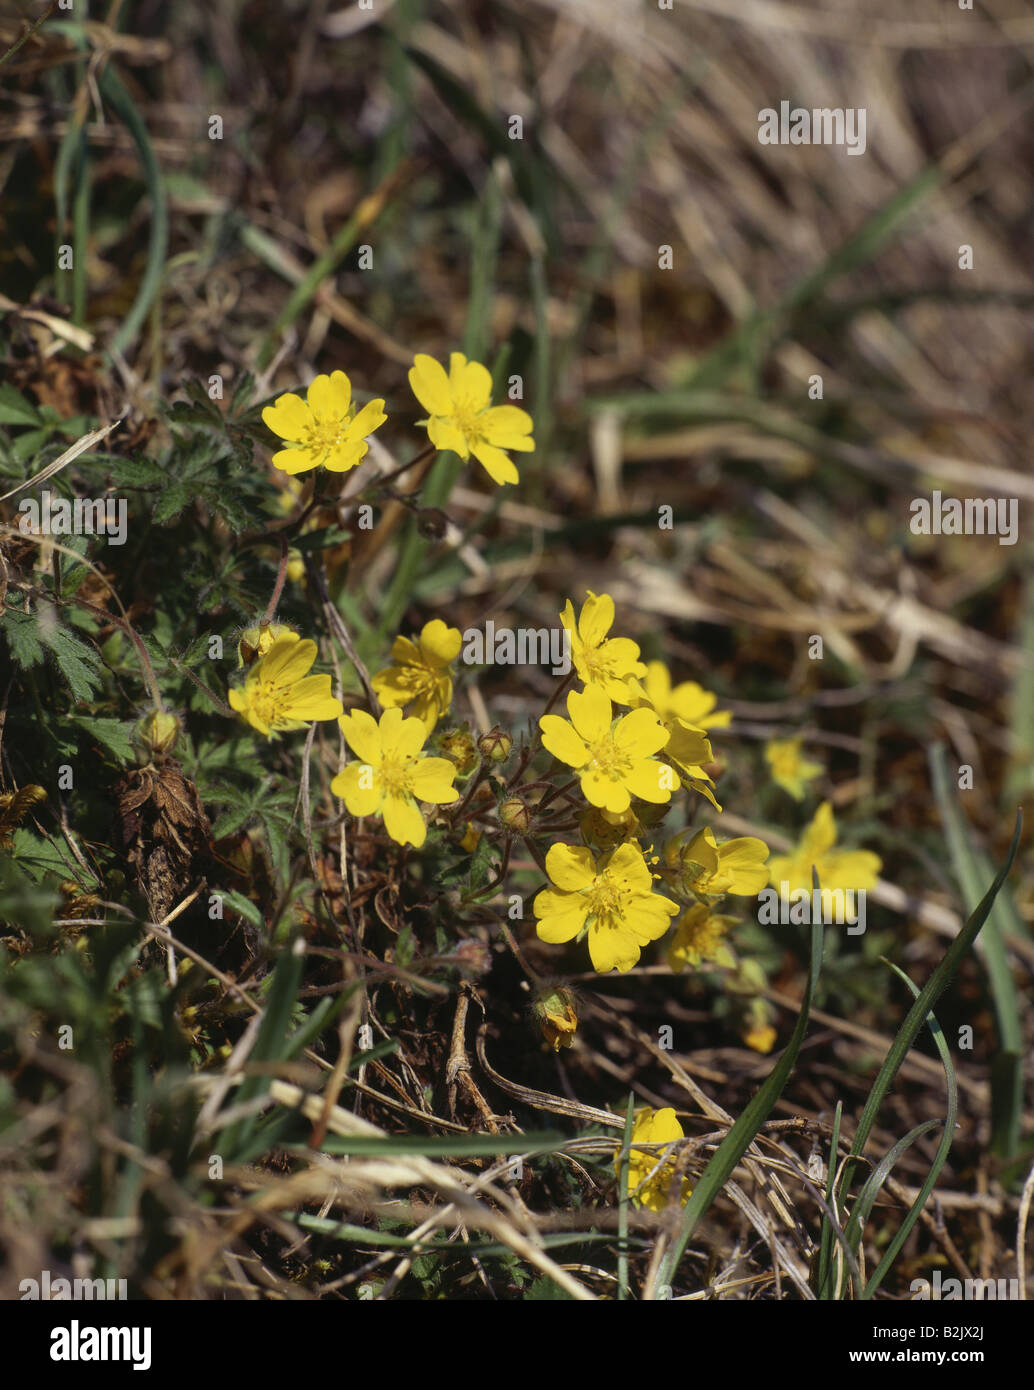 botany, Potentilla, Potentilla heptaphylla, yellow bloom, Additional-Rights-Clearance-Info-Not-Available Stock Photo